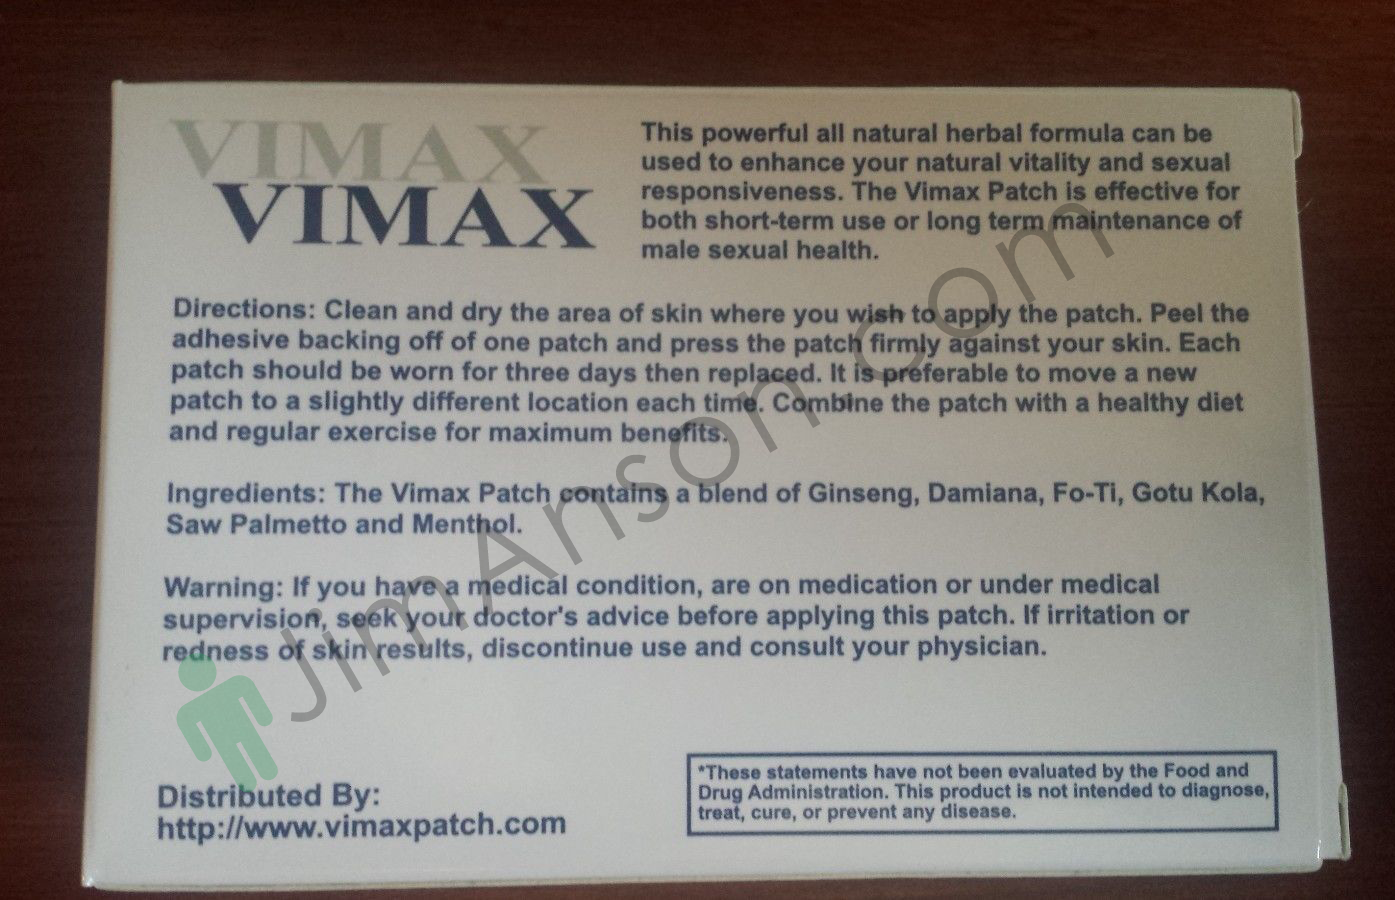 pros and cons of vimax patch revealed what kind of